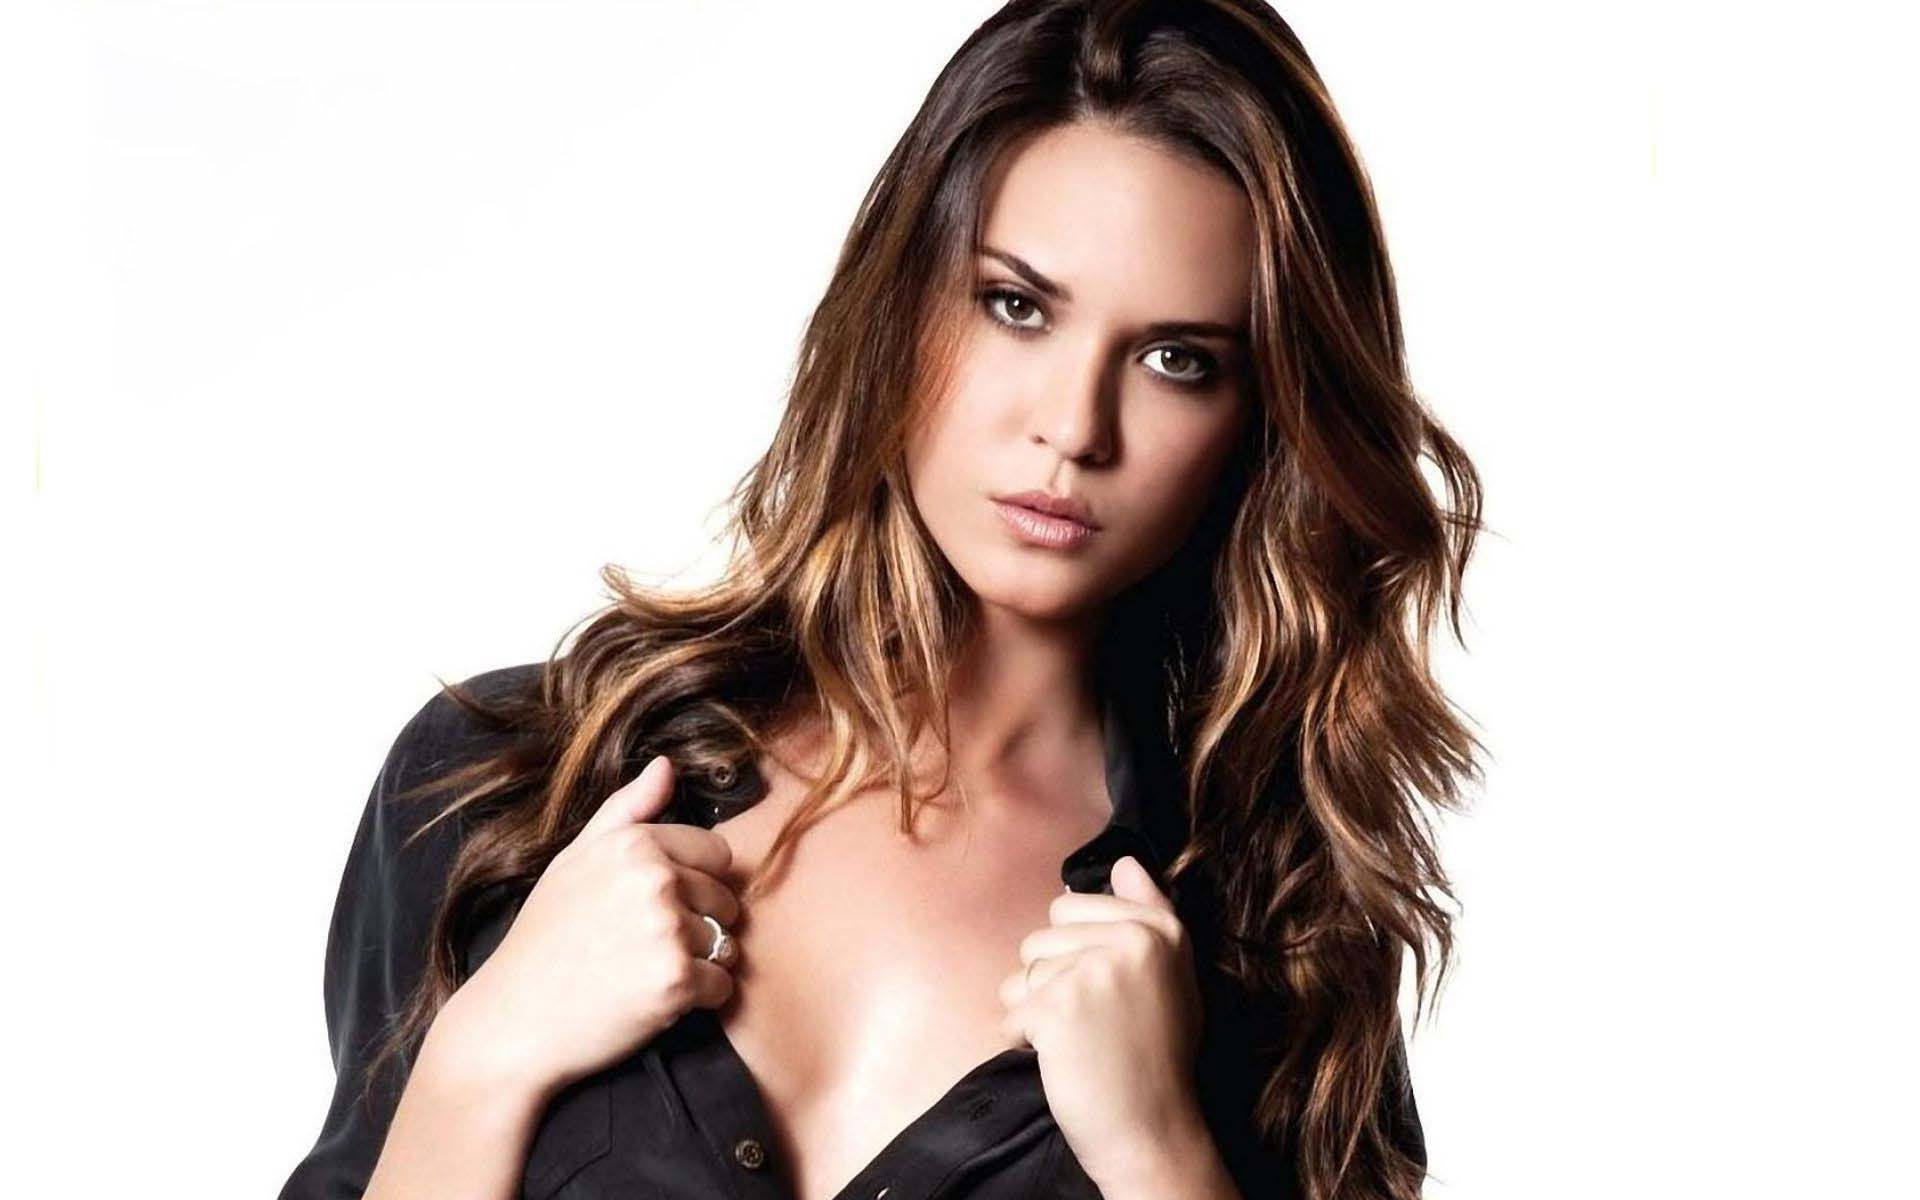 1920x1200 - Odette Annable Wallpapers 31